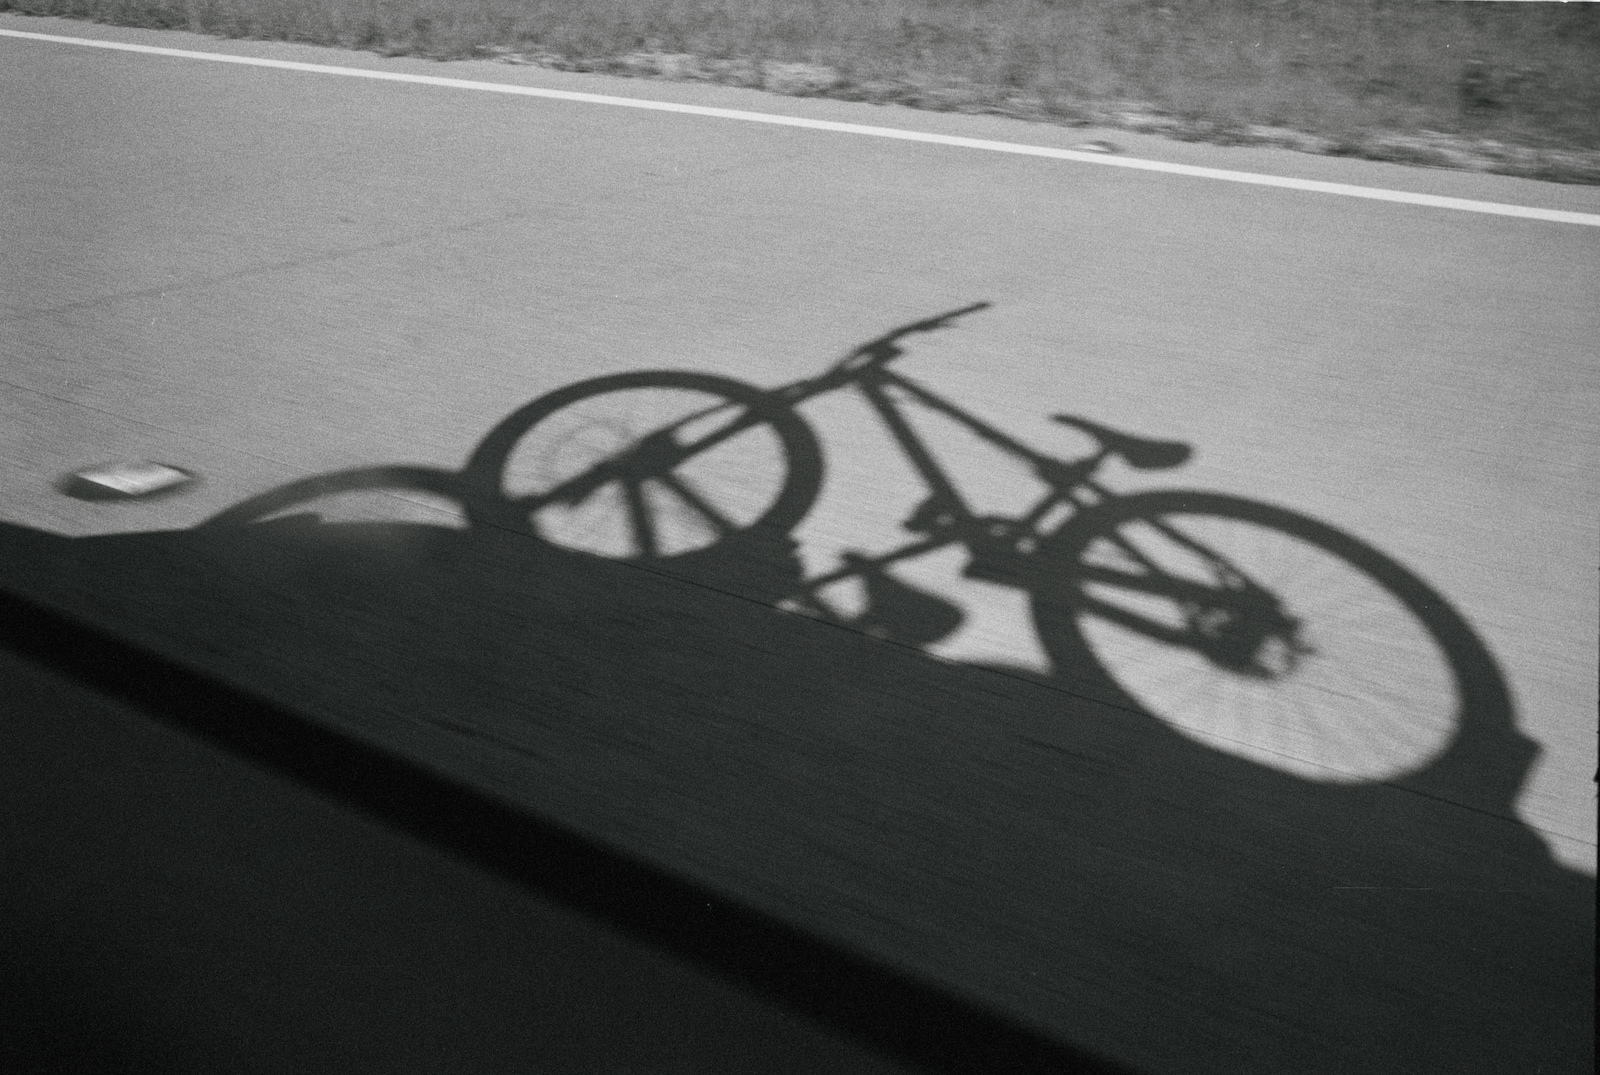 The shadow of a NICOLAI BMXTB